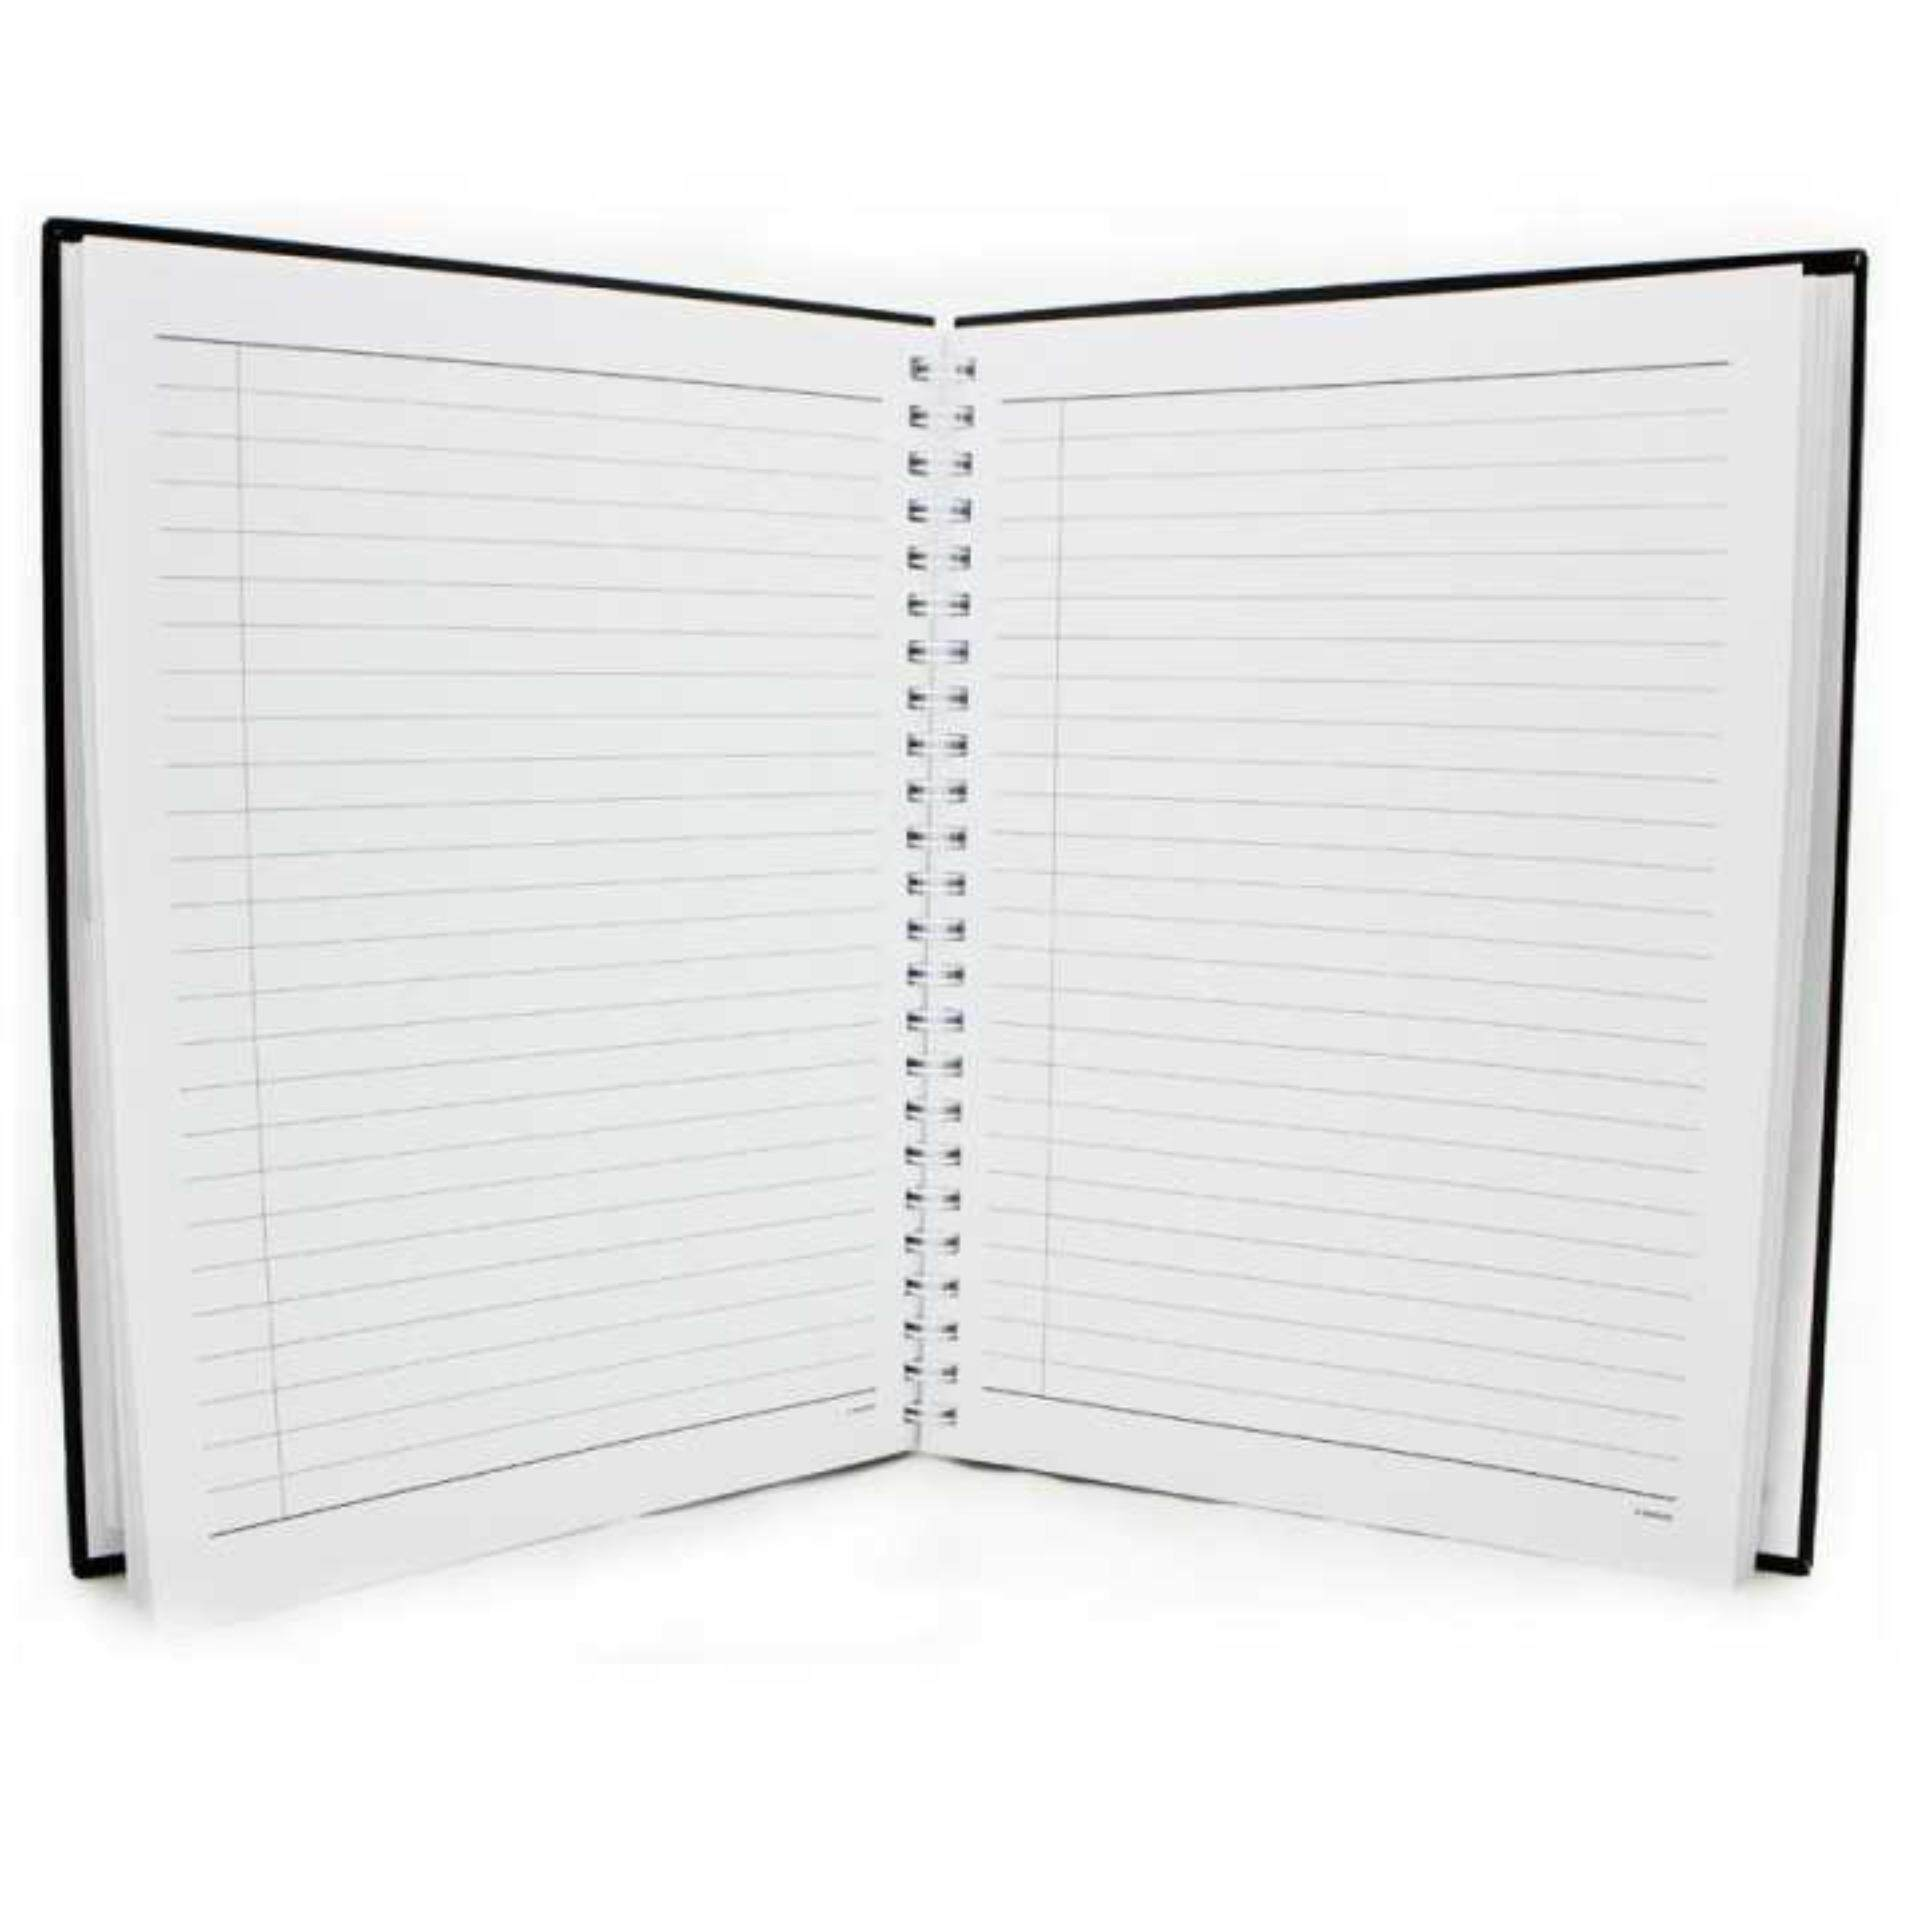 Marvel Avengers 100 Sheets A5 Hard Cover Notebook - Black Colour